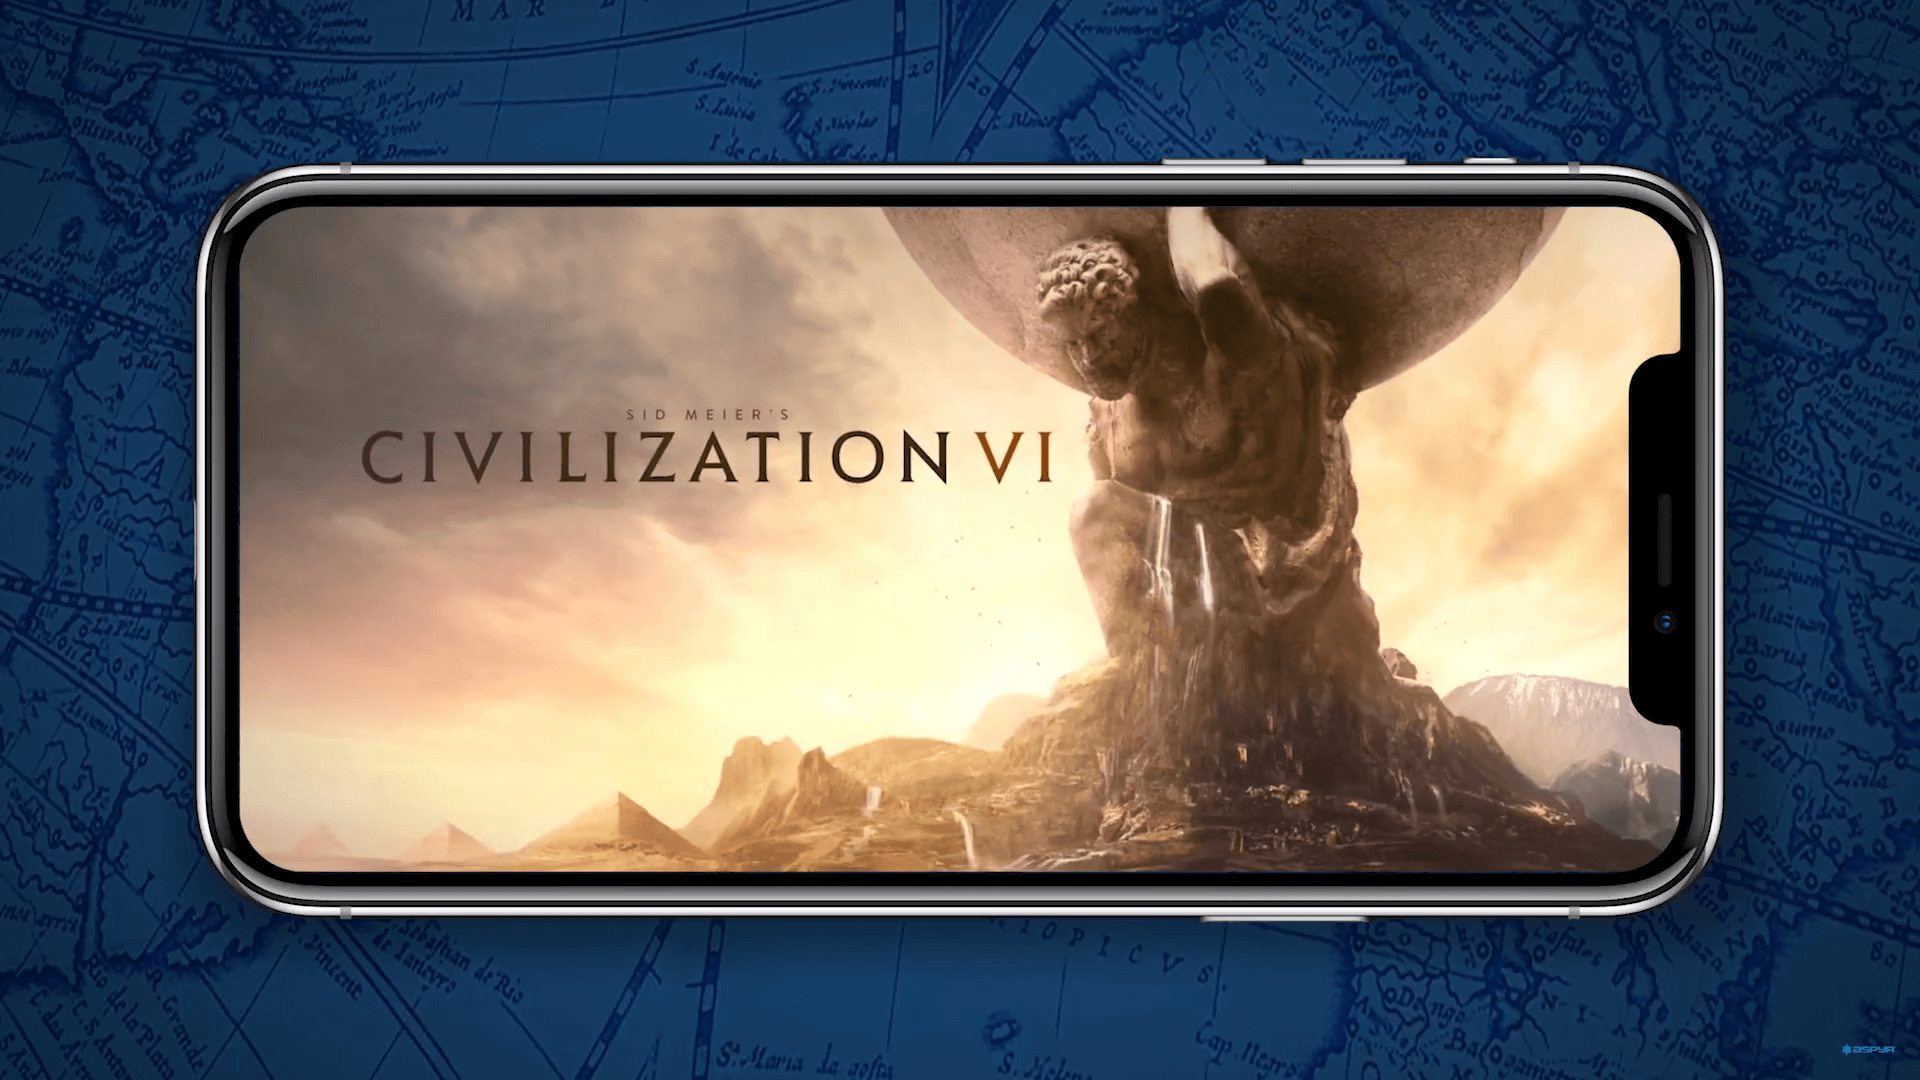 Sid Meier's Civilization VI works on iPhones fairly well